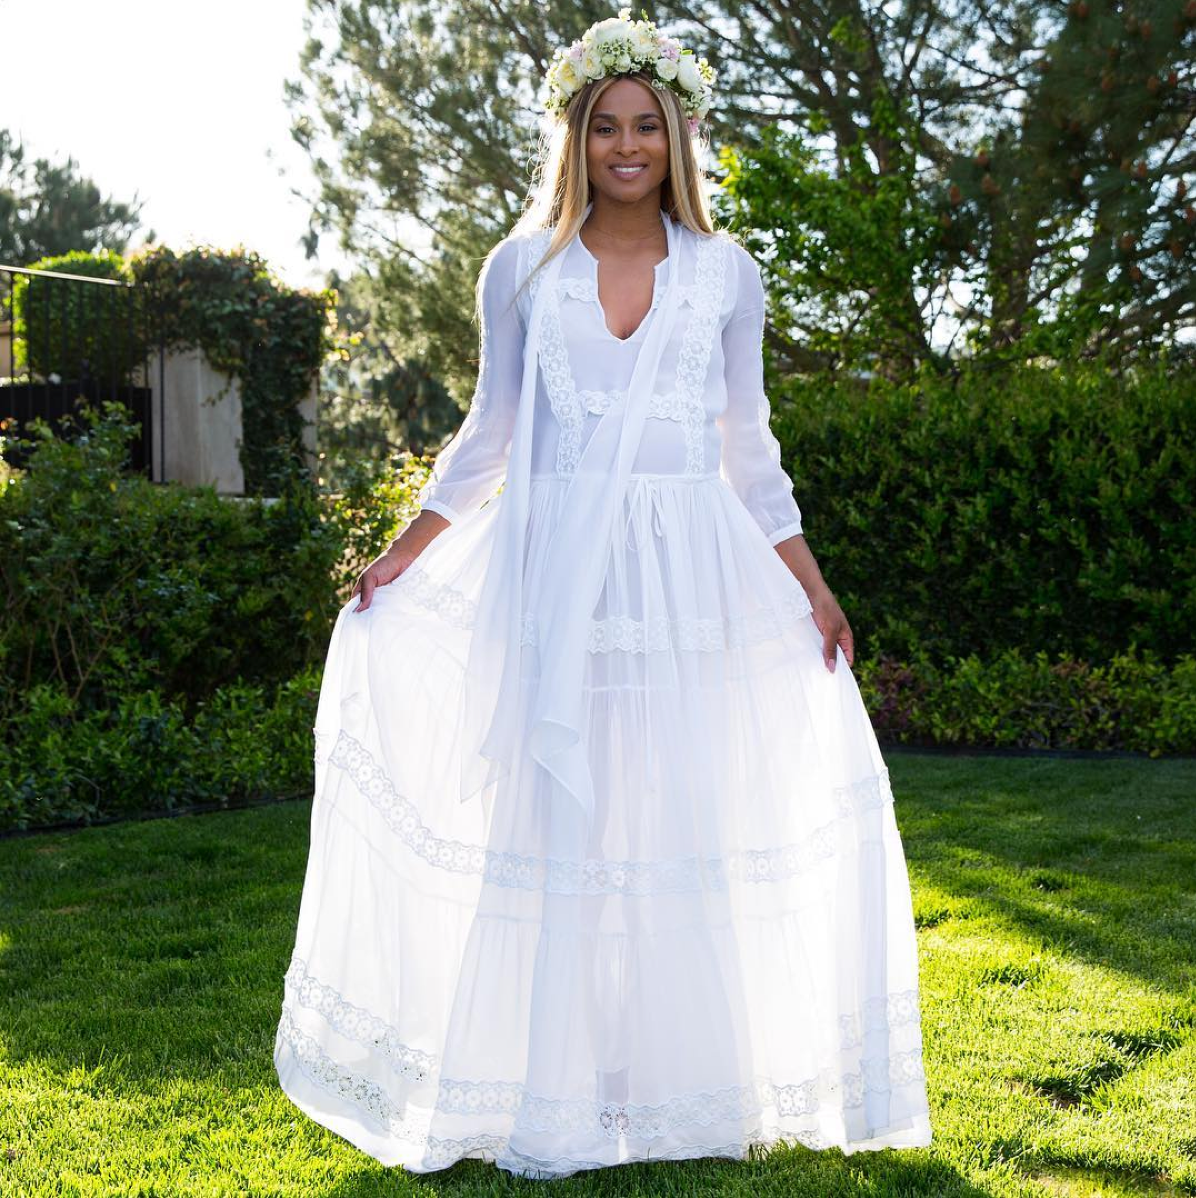 4a881d1edf714 Ciara's Pregnancy Style is Bound to be Epic, We've Got Proof - Essence